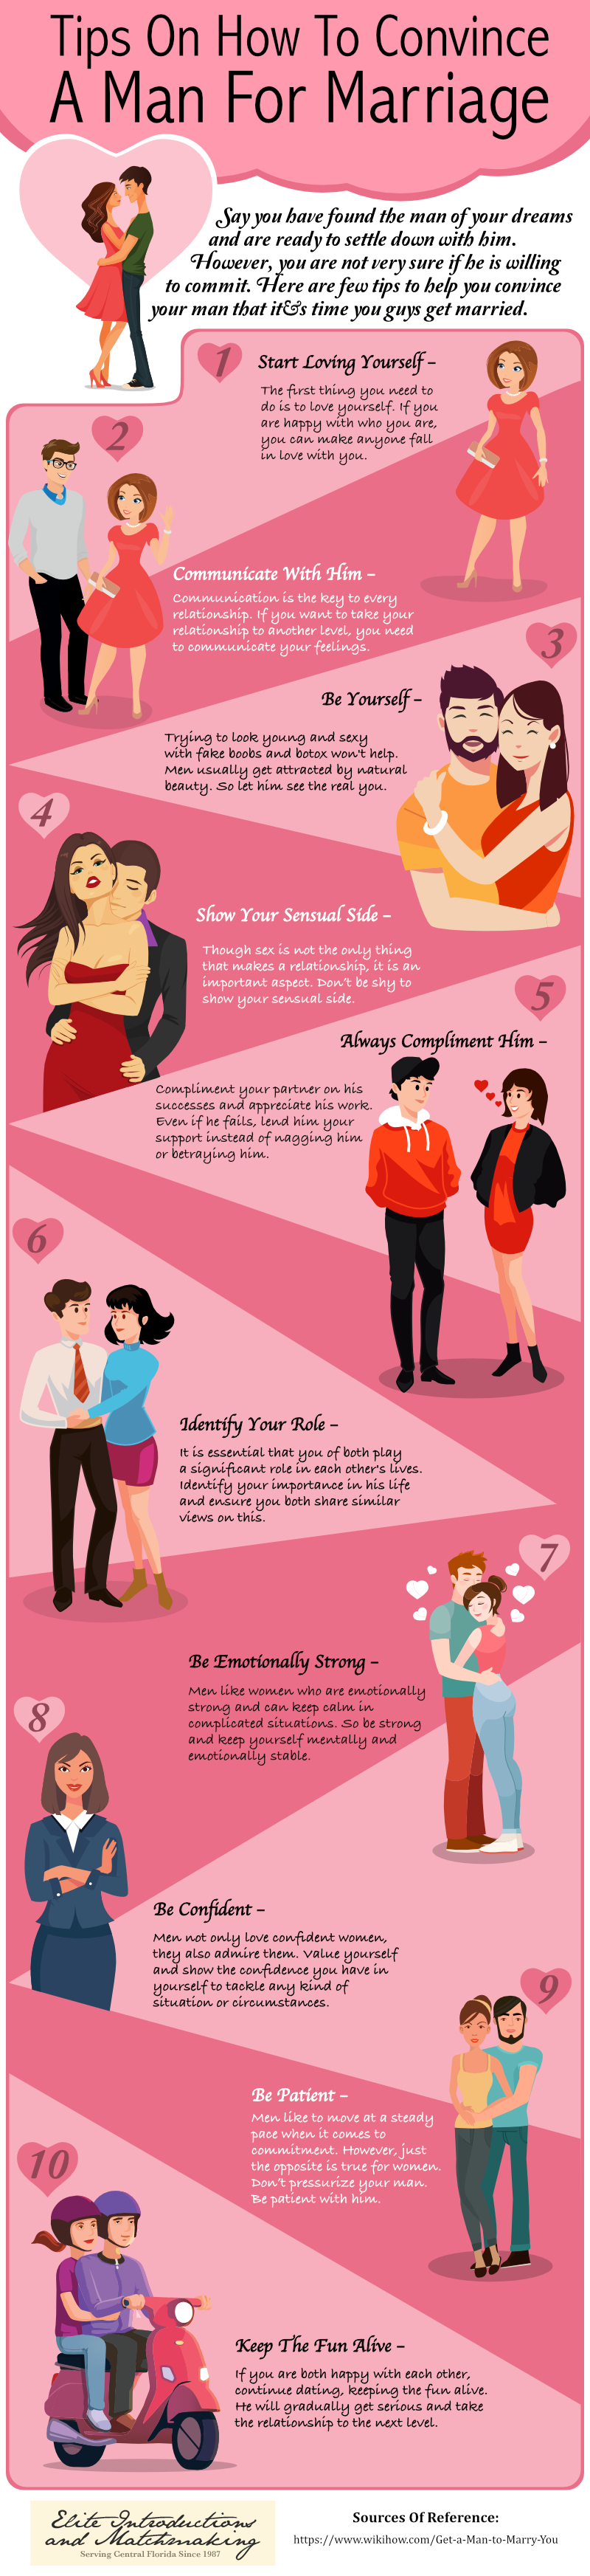 Tips On How To Convince A Man For Marriage